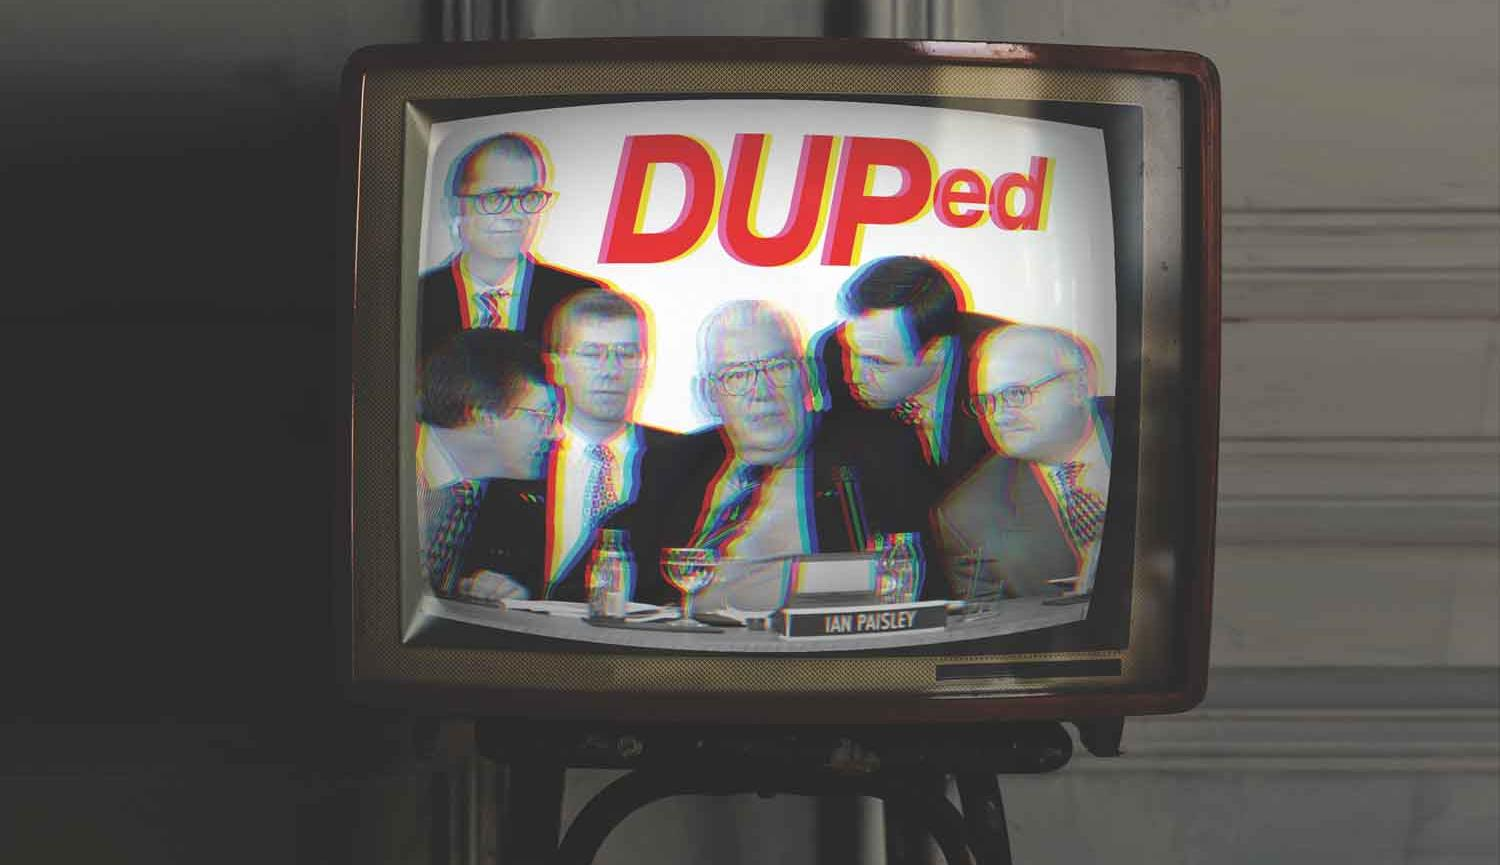 Photo of old style TV with Ian Paisley surrounded by five men on the screen